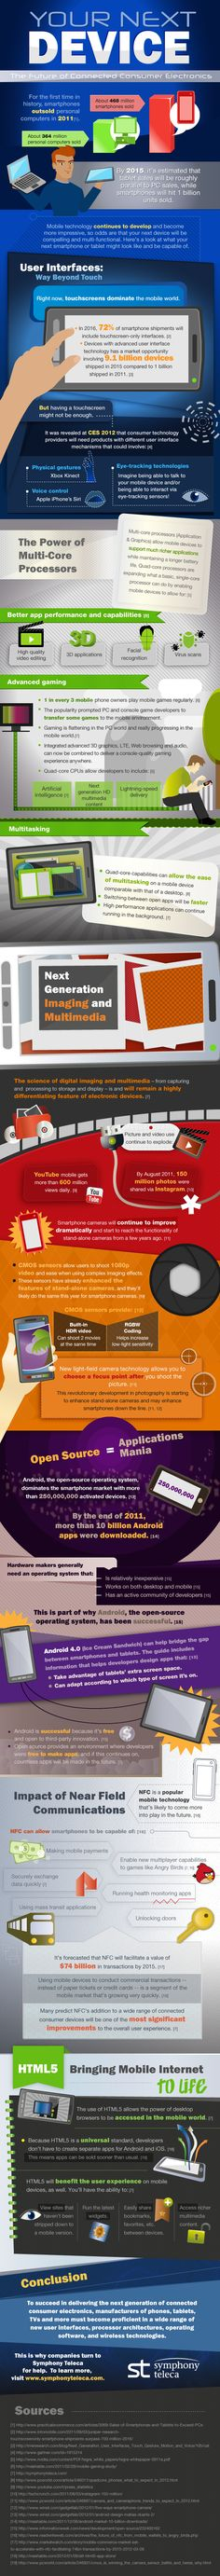 The #Future of Connected #Devices [Infographic]